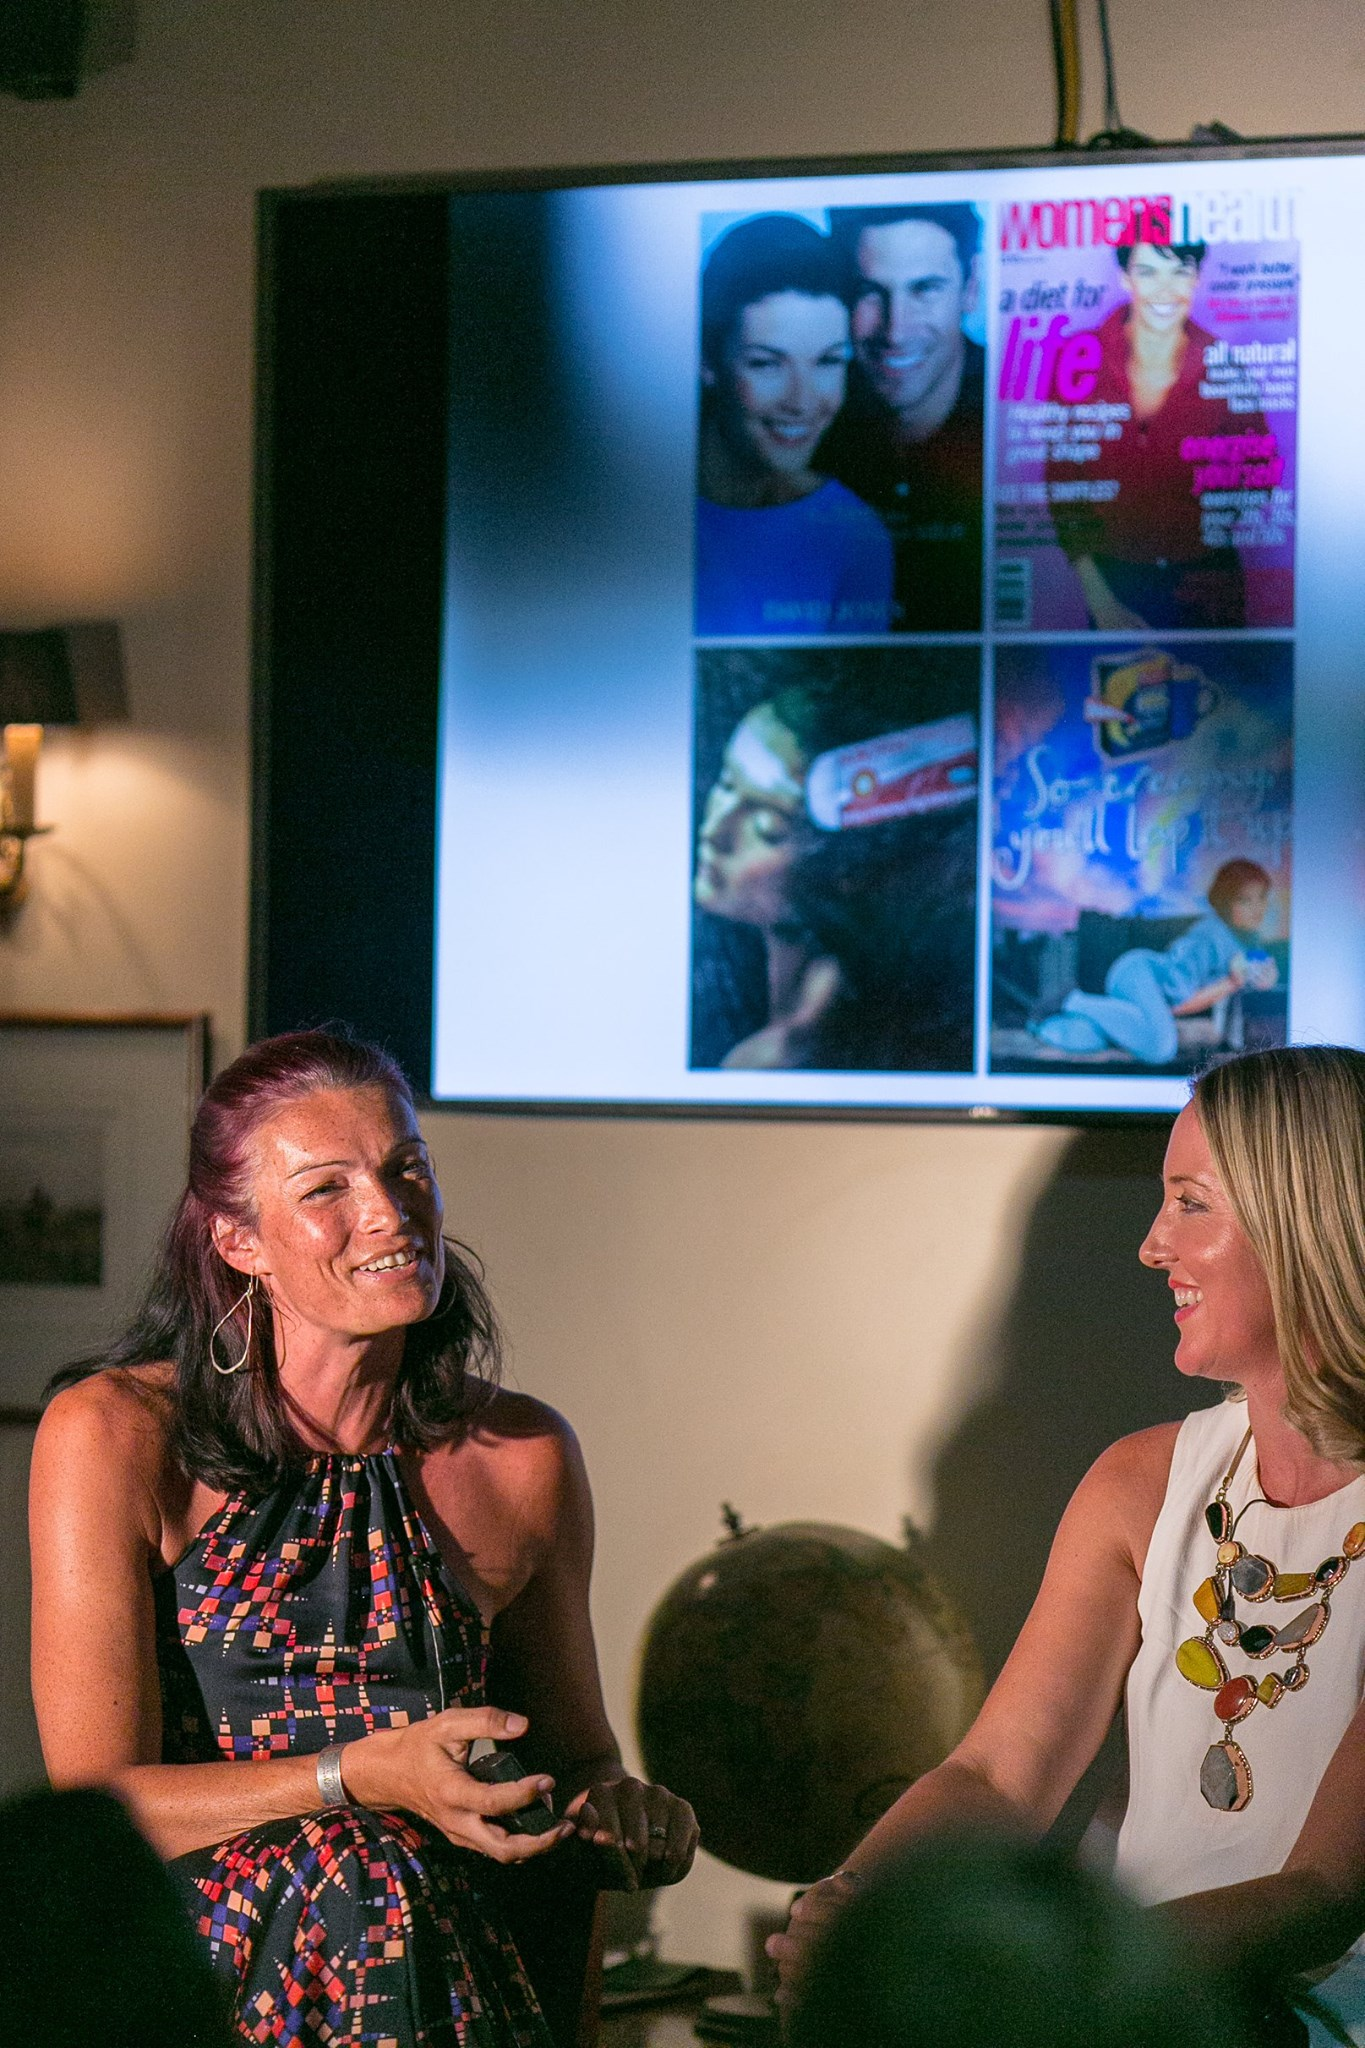 In conversation, the delightful Tessa White and Kate Sutton, featured mamas at our February creative mama evening talk